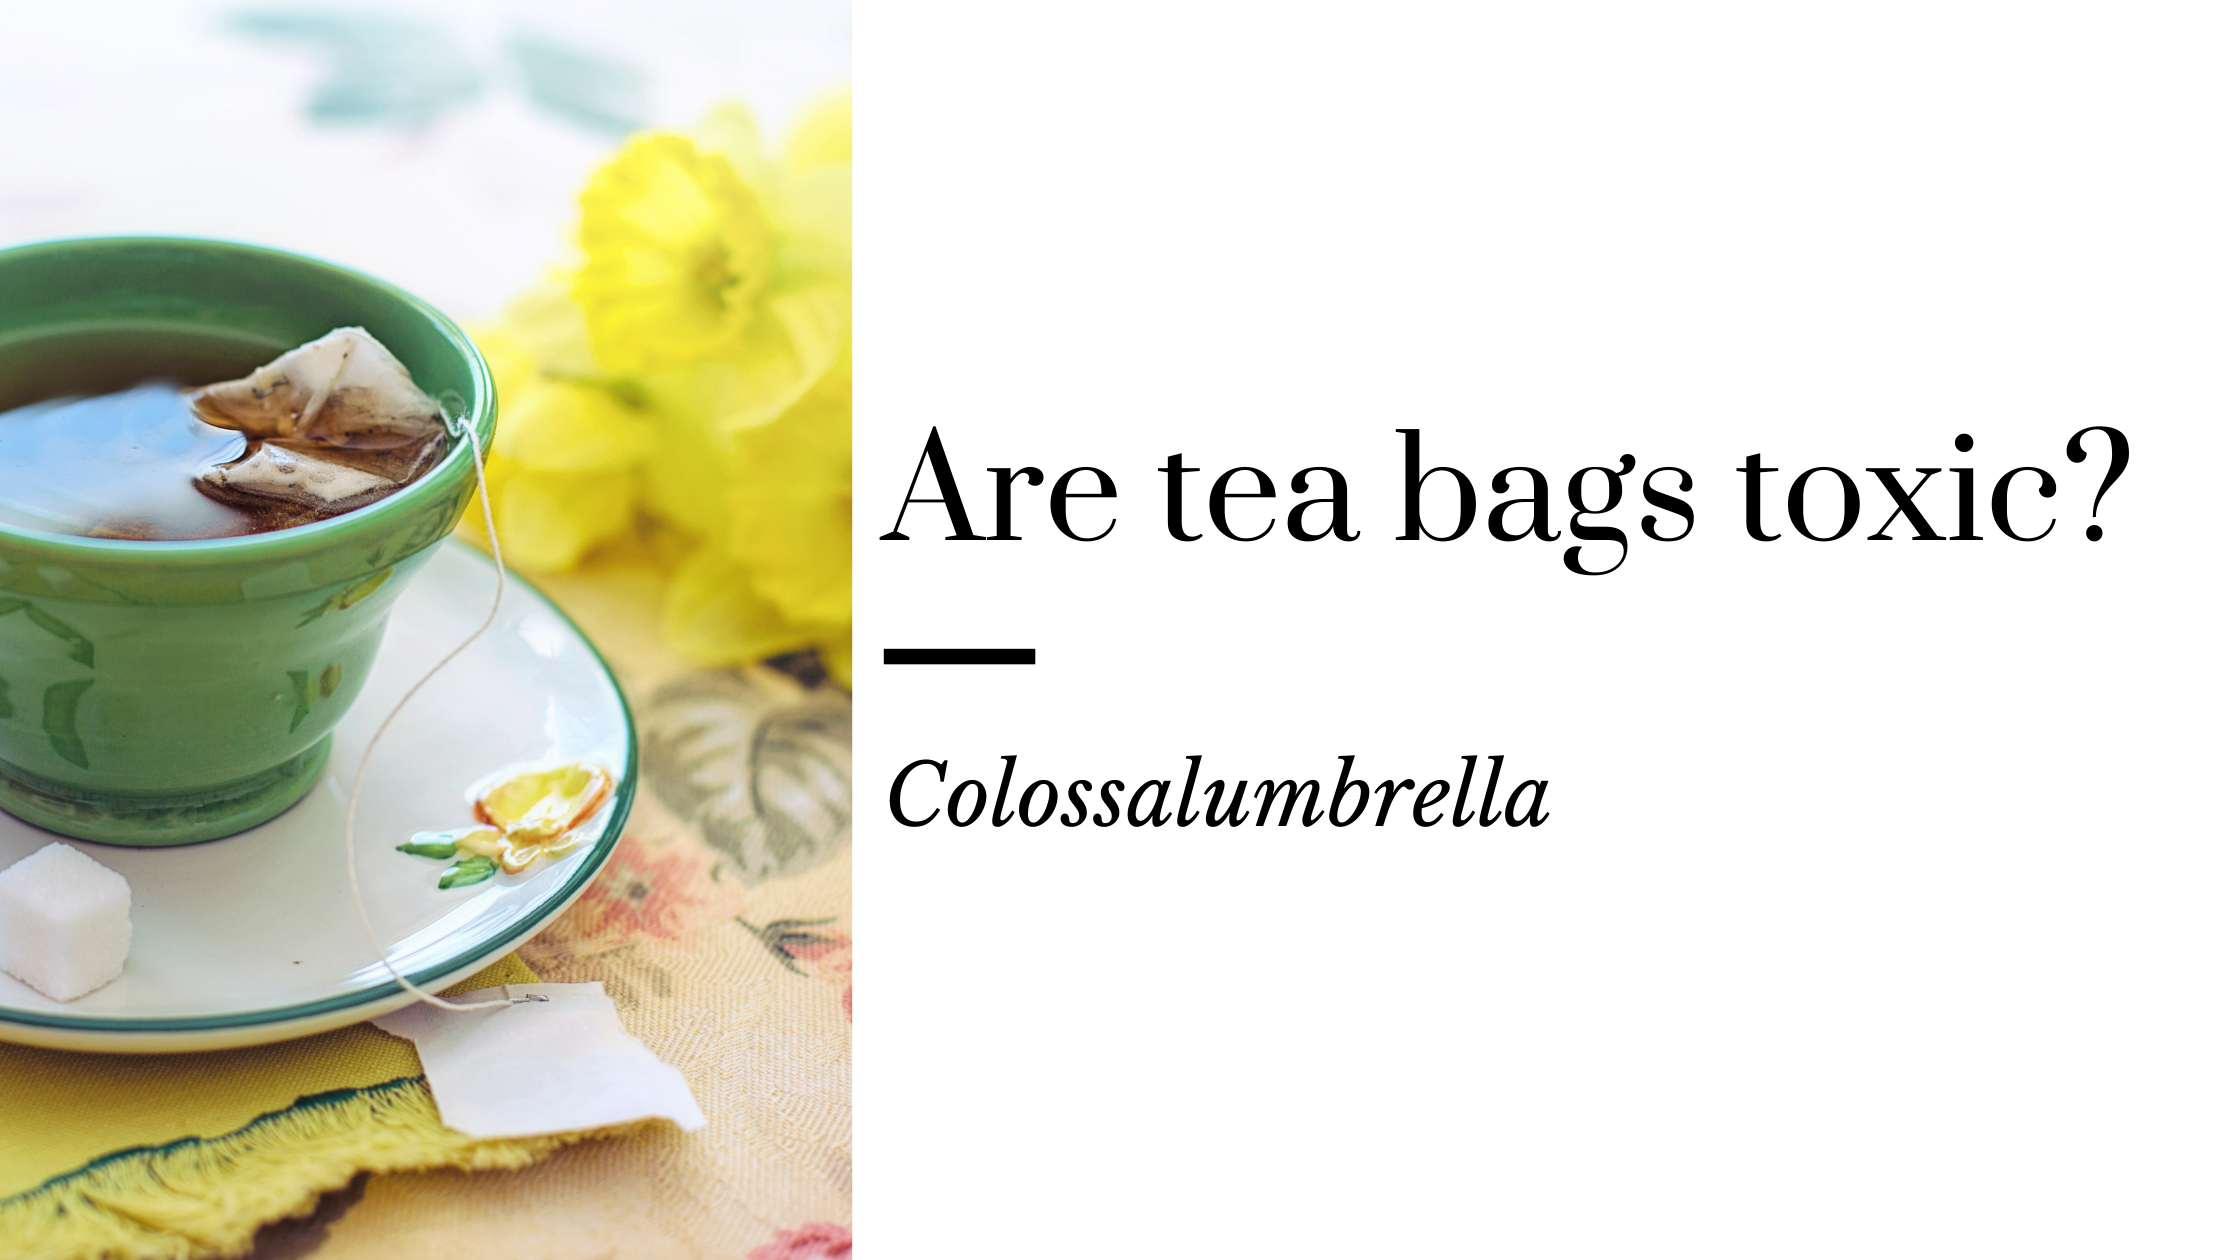 Are You Aware Of Tea Bags Plastic? Do You Know What Are Tea Bags Made Of?